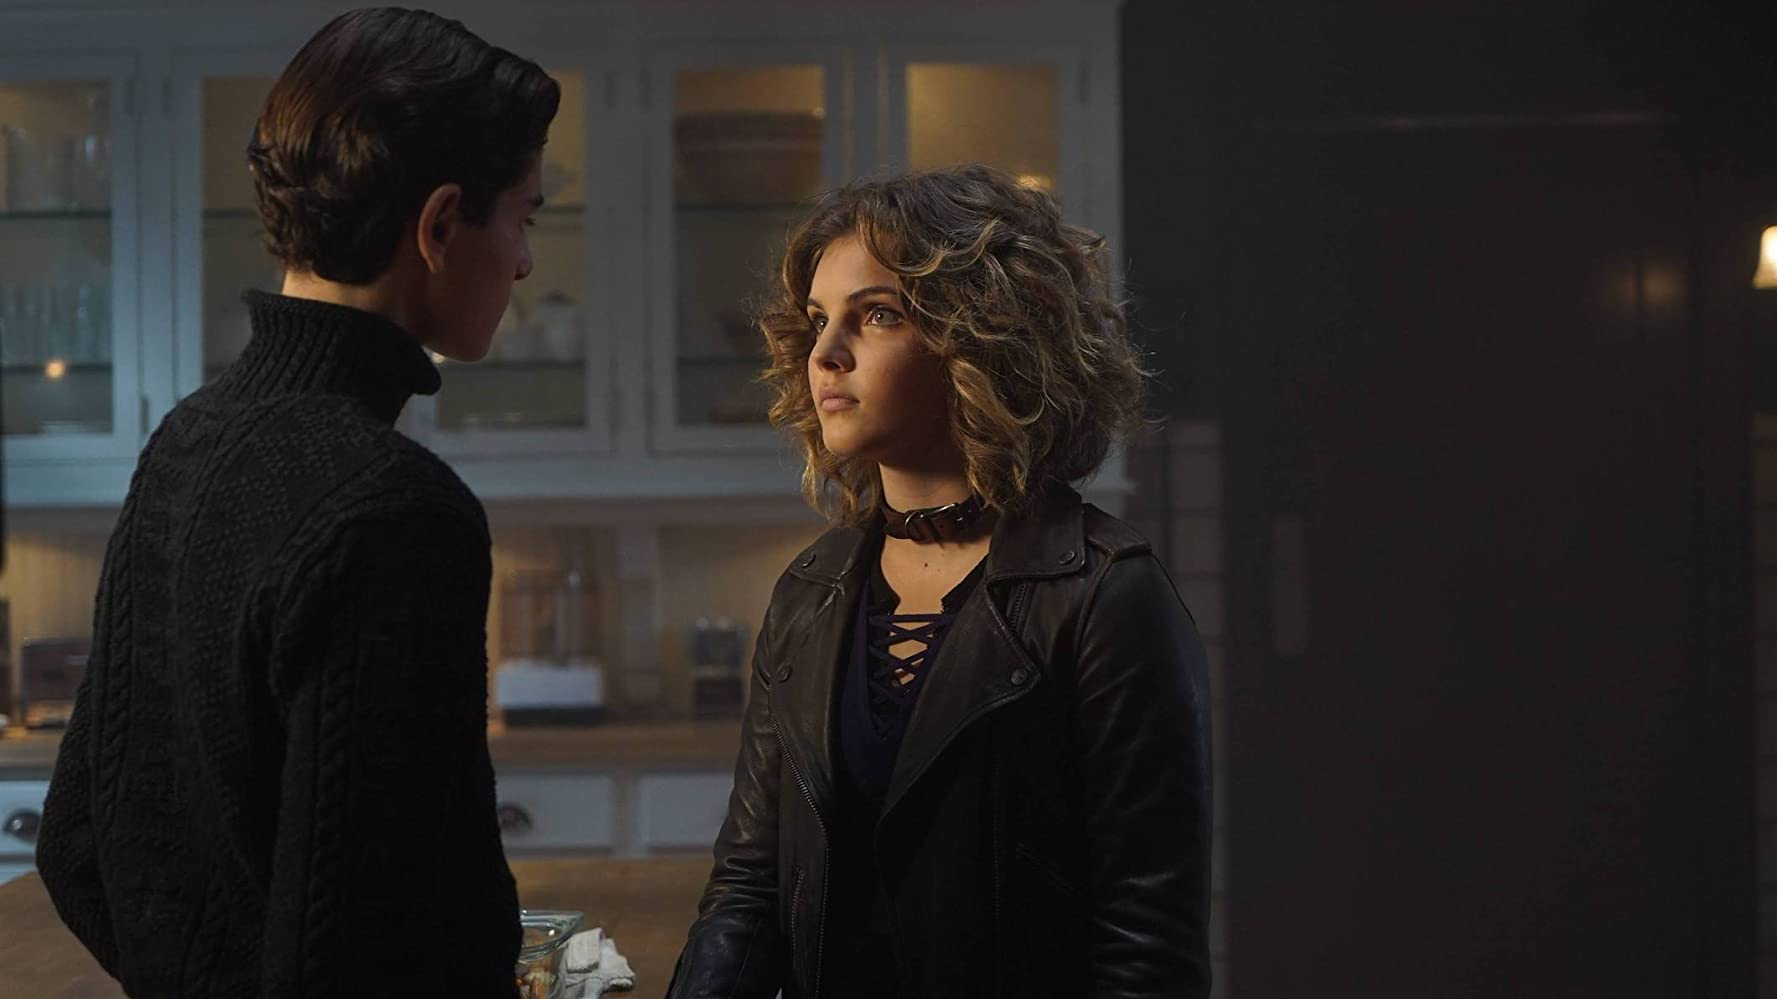 David Mazouz and Camren Bicondova in Gotham (2014)